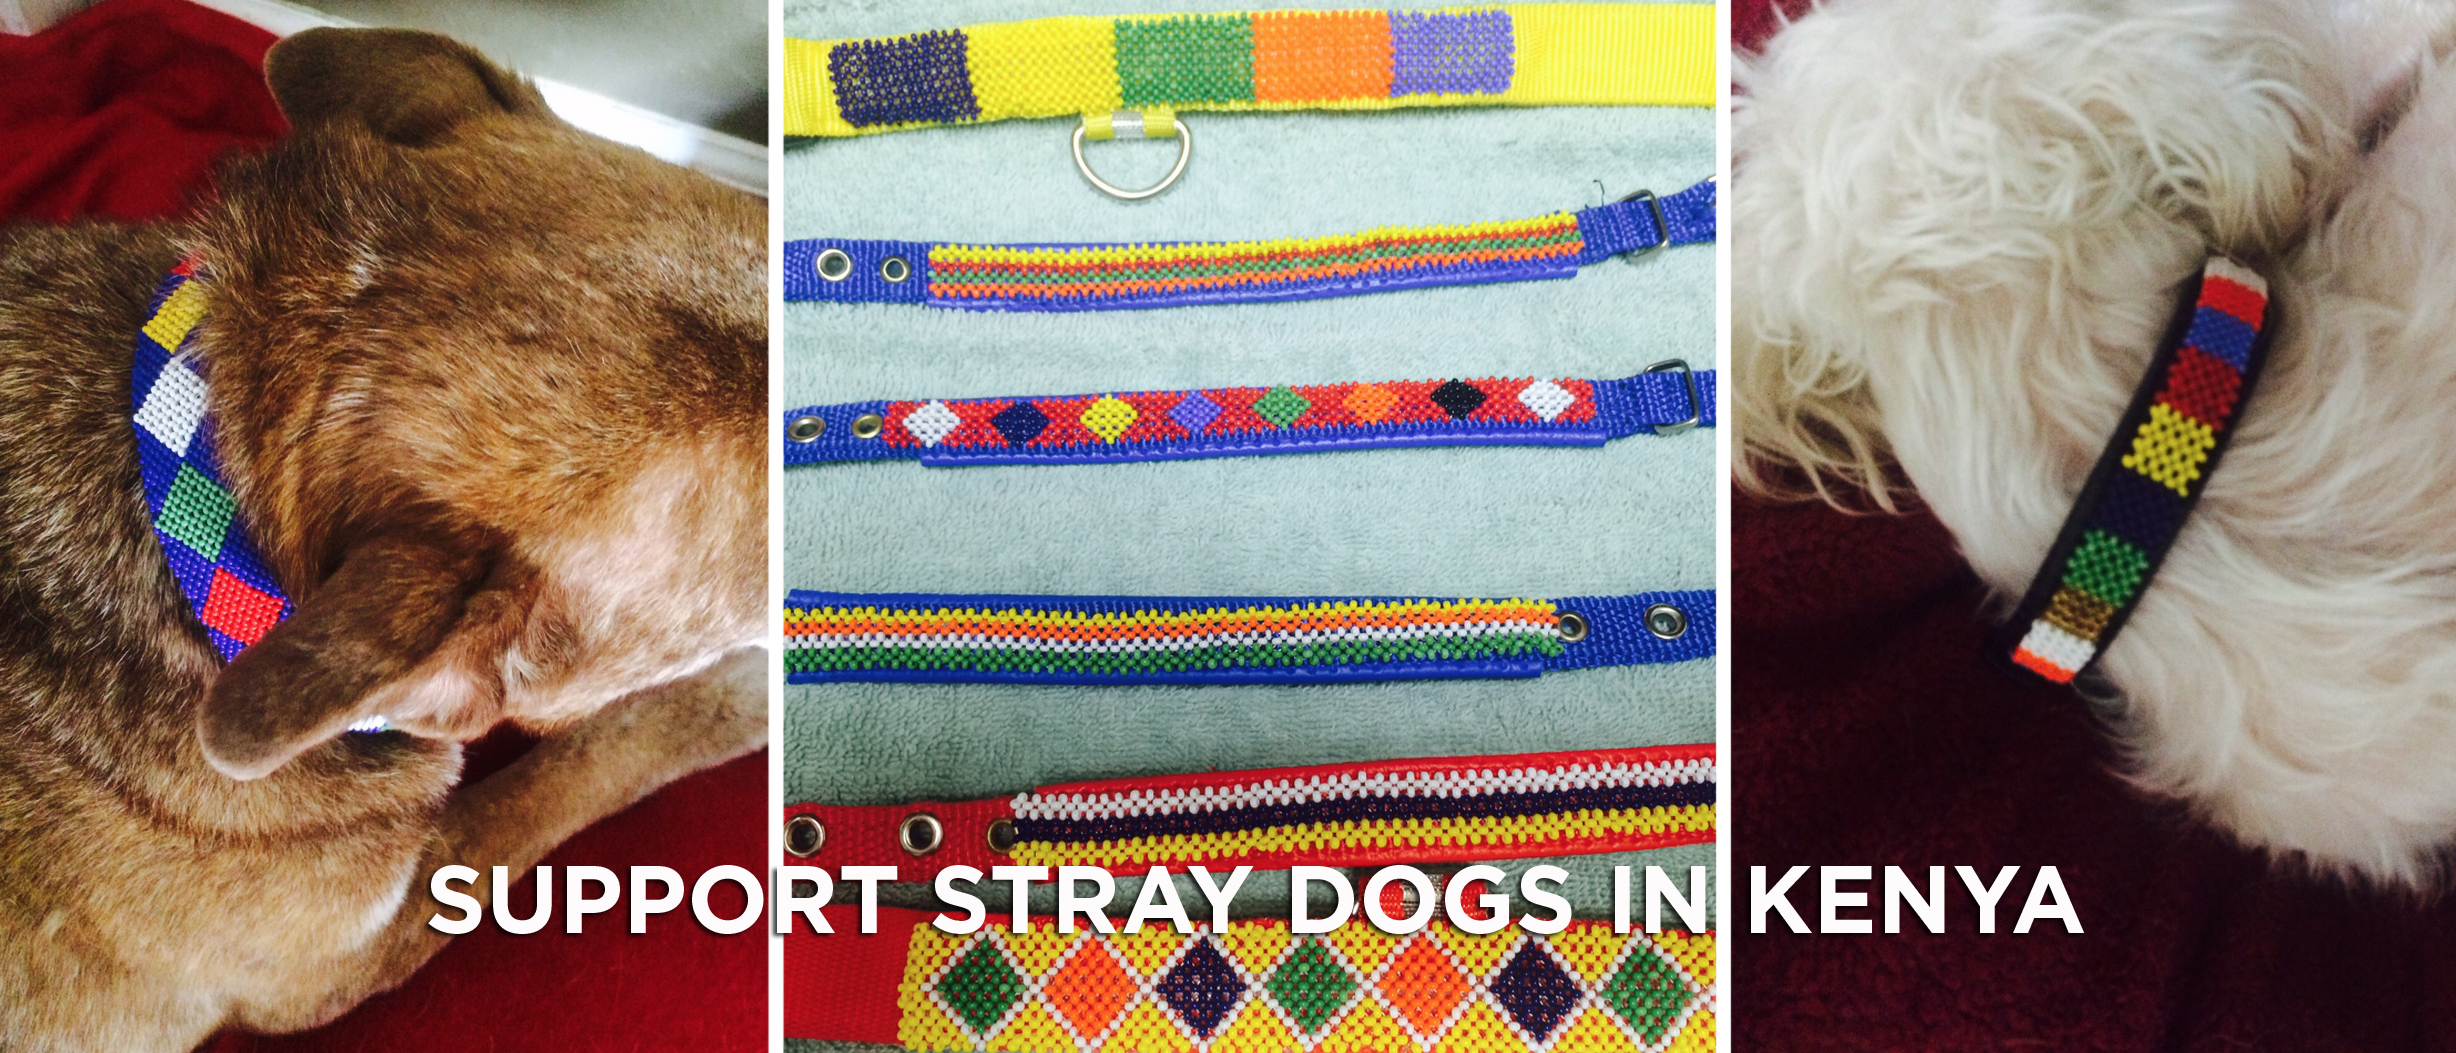 Support Stray Dogs in Kenya